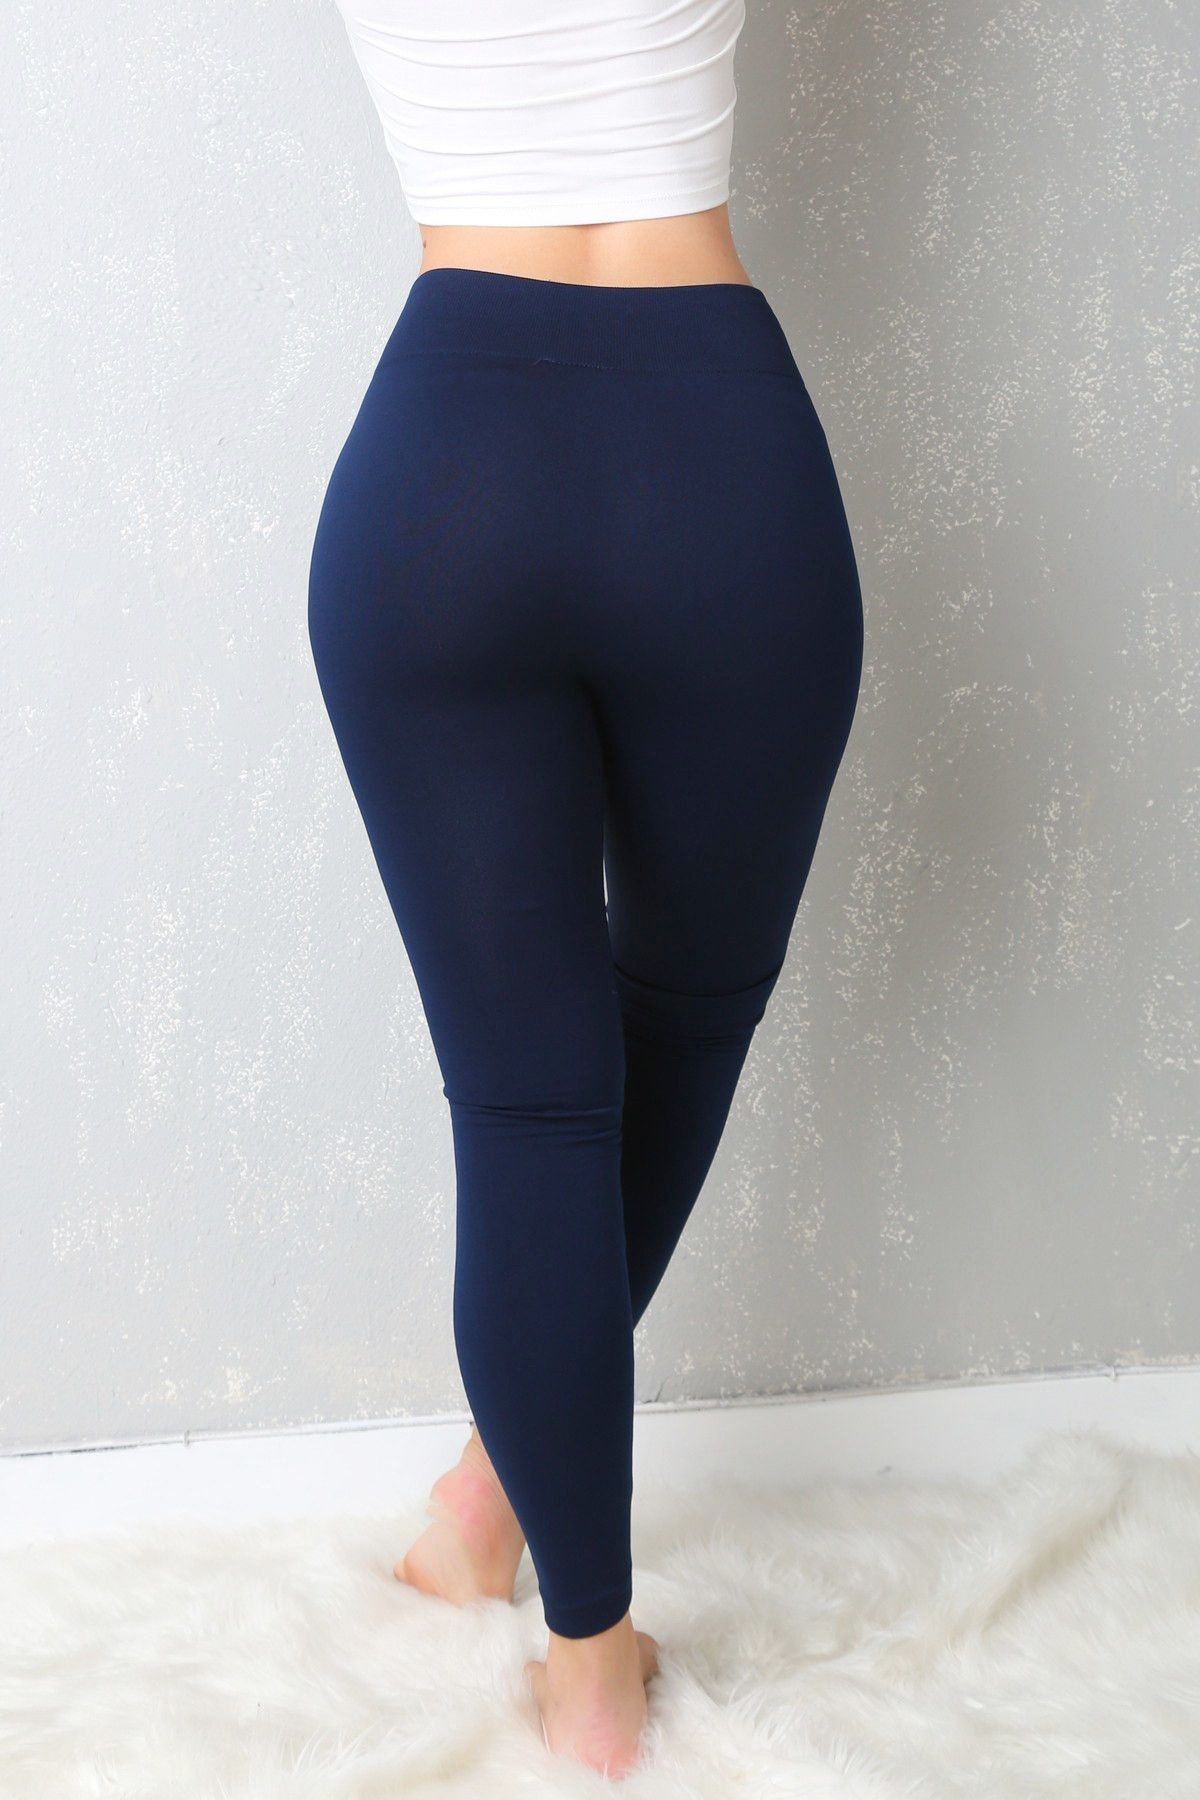 0d6512a26 My Favorite Leggings Ever - Navy Blue | My Style | Navy blue ...